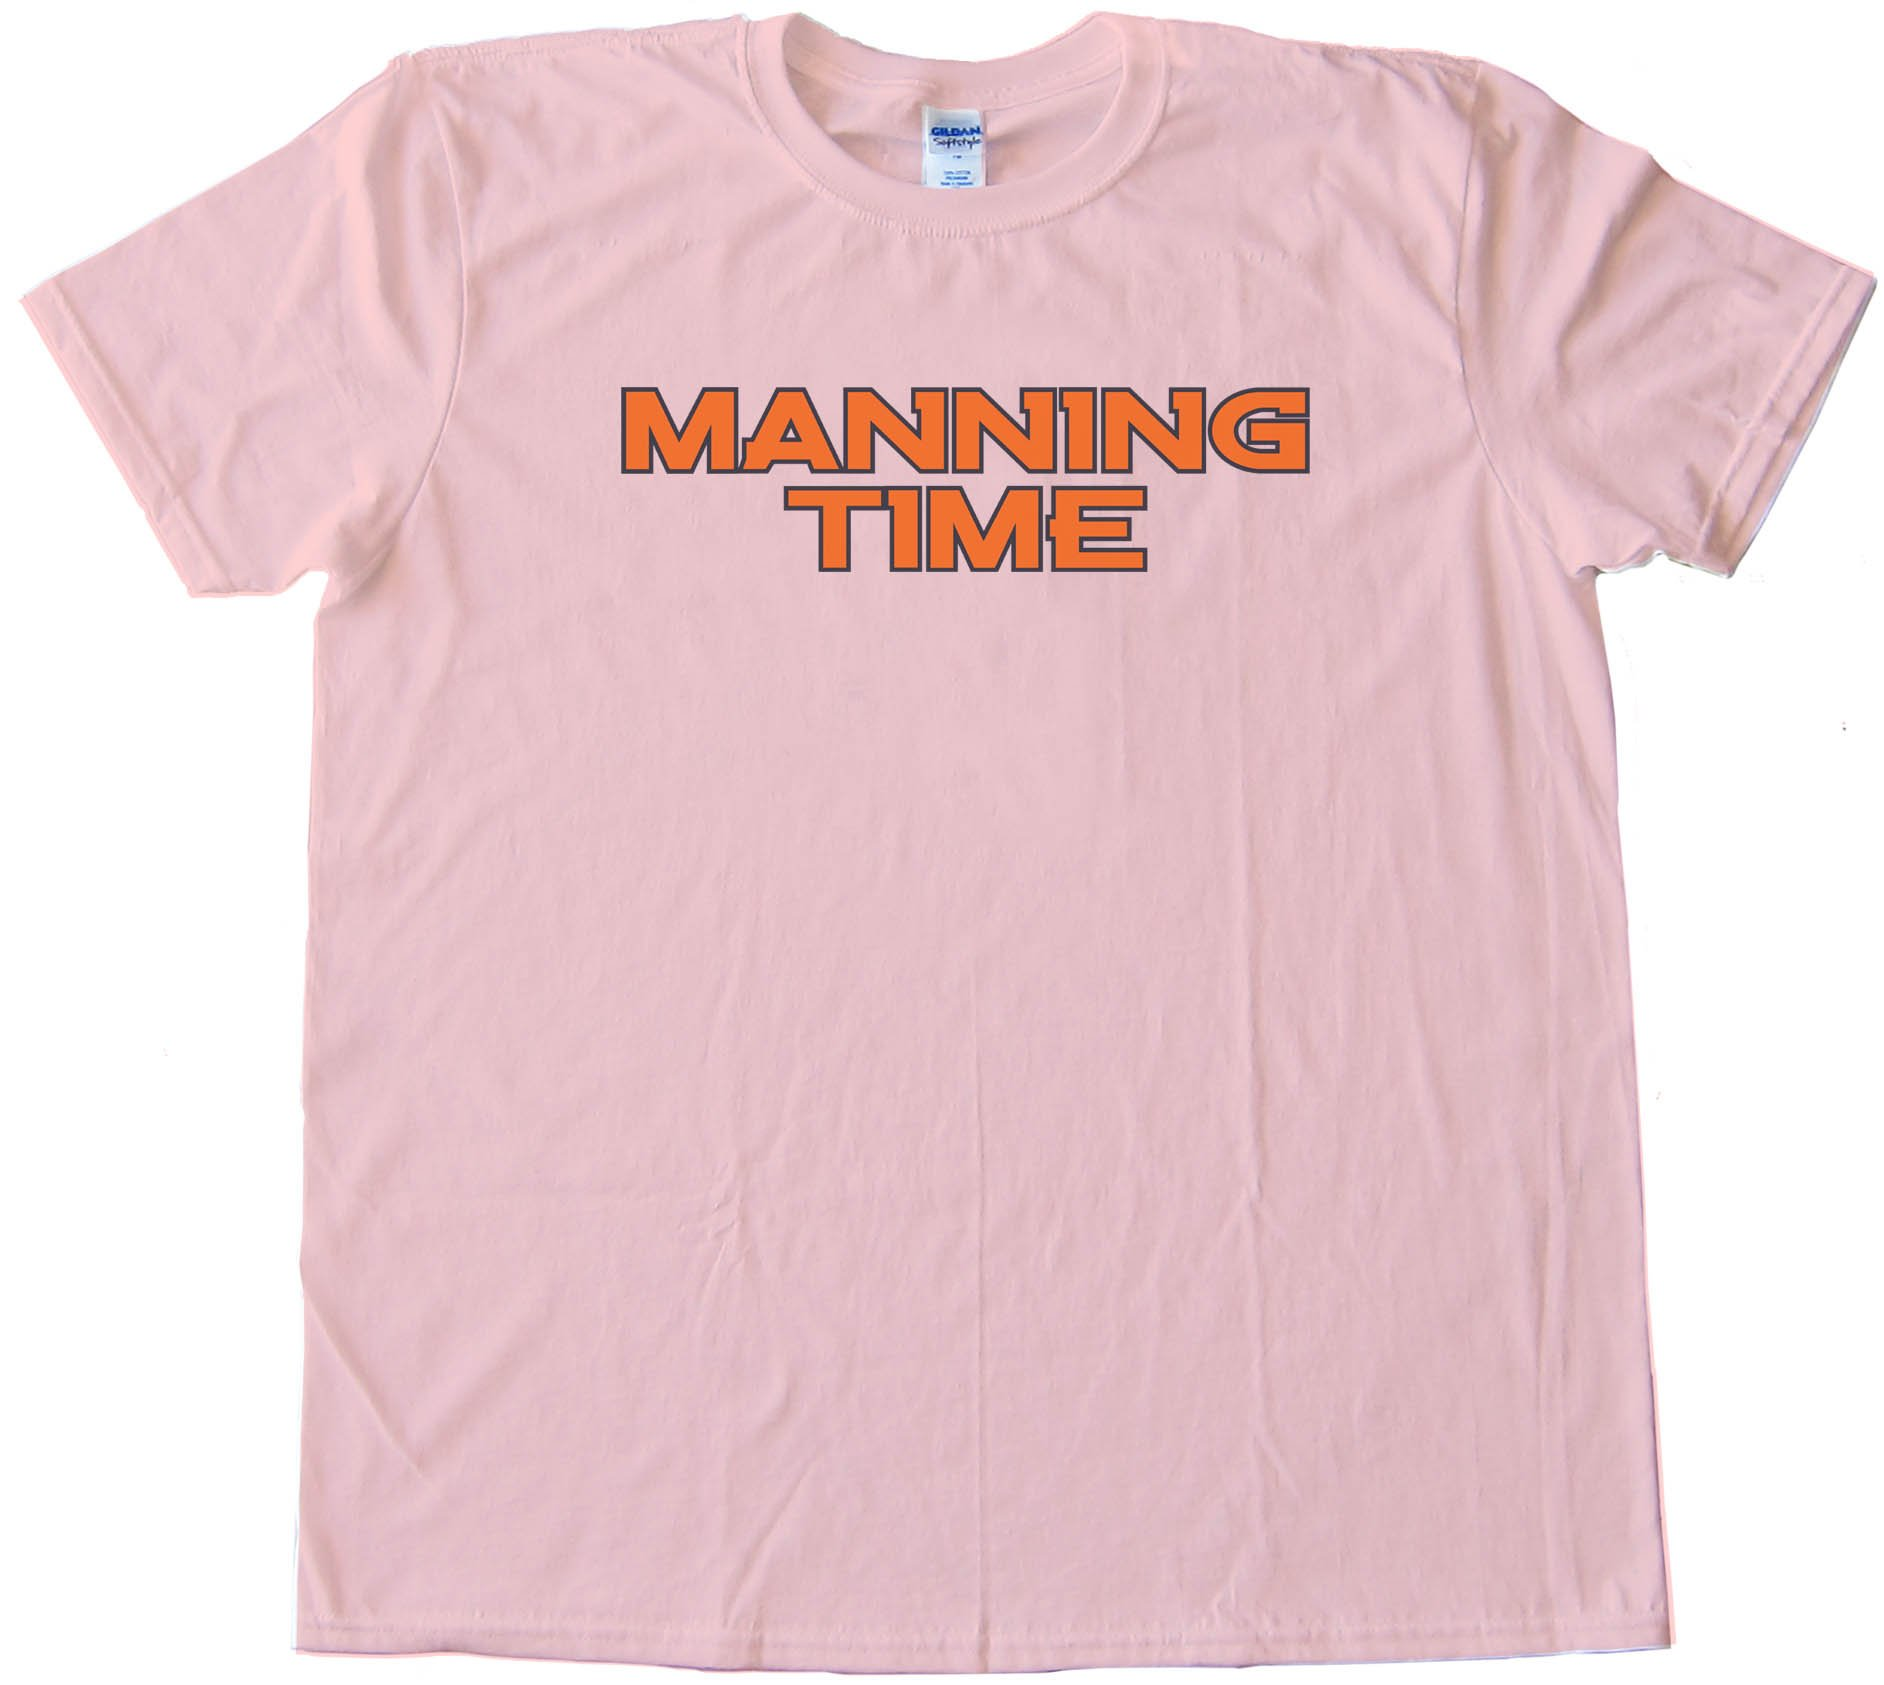 Manning Time - Denver Broncos Football - Tee Shirt